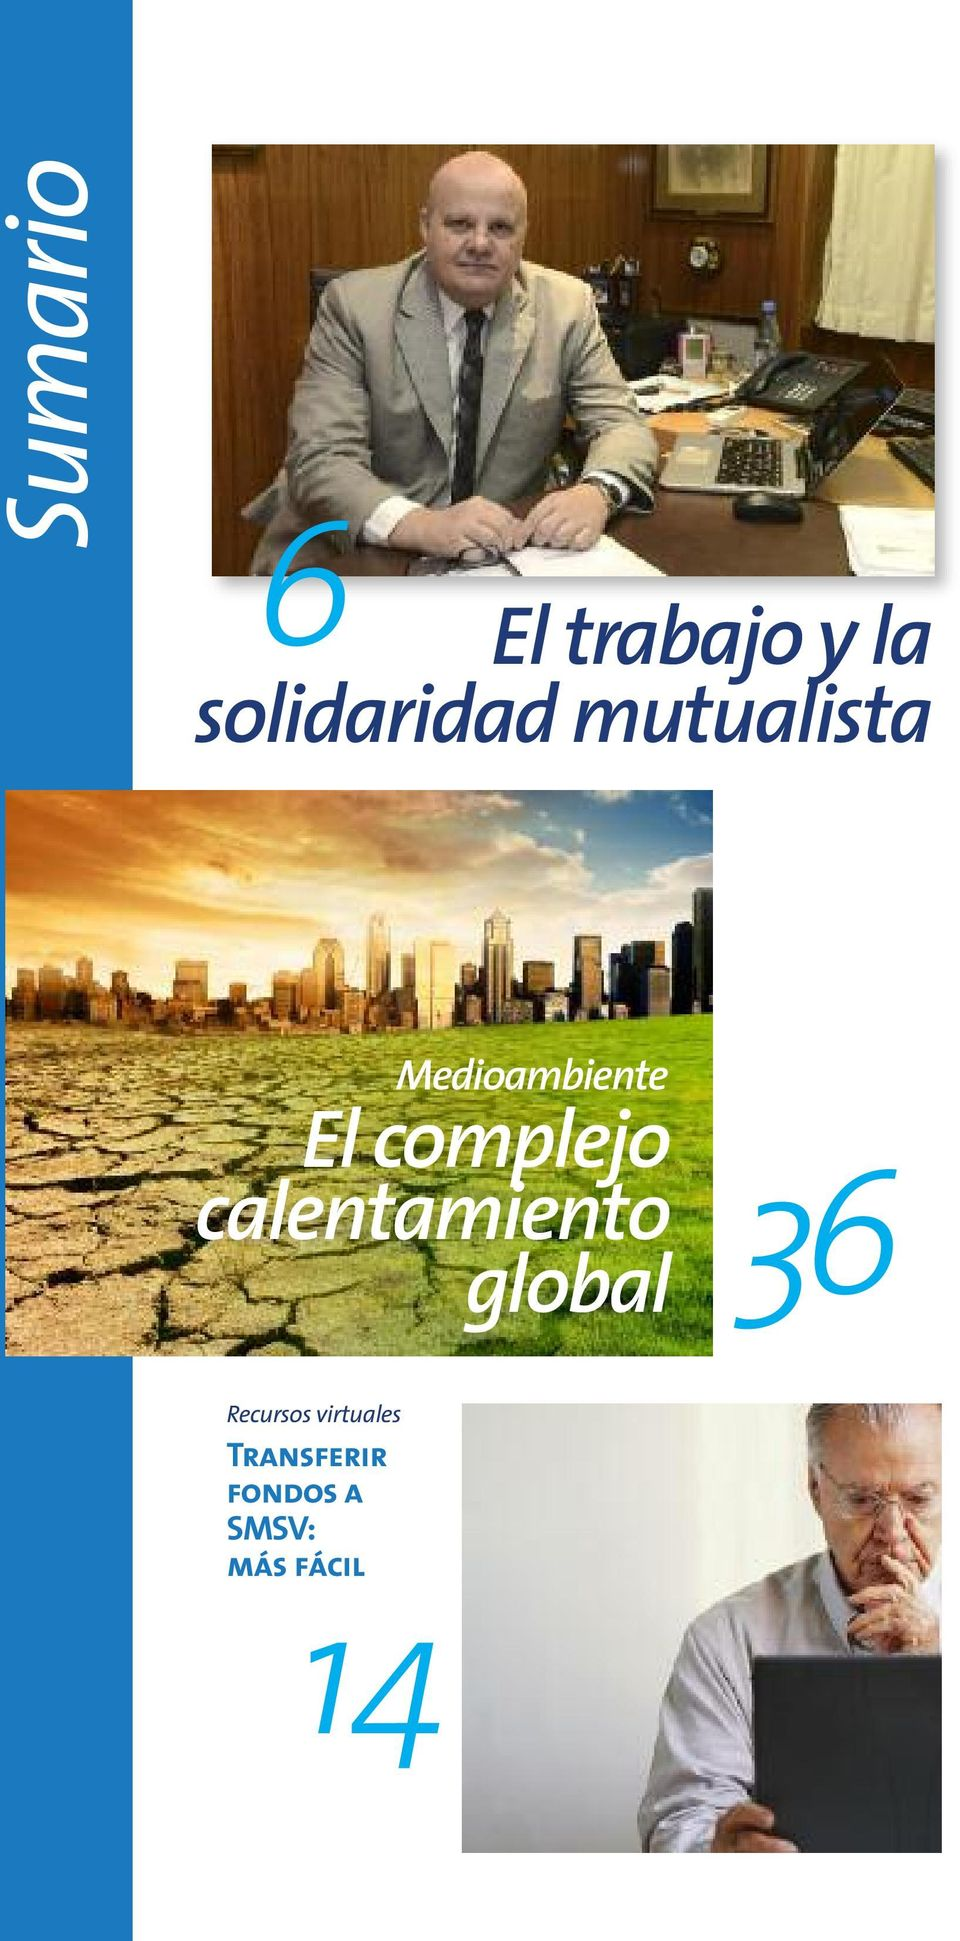 calentamiento global 36 Recursos